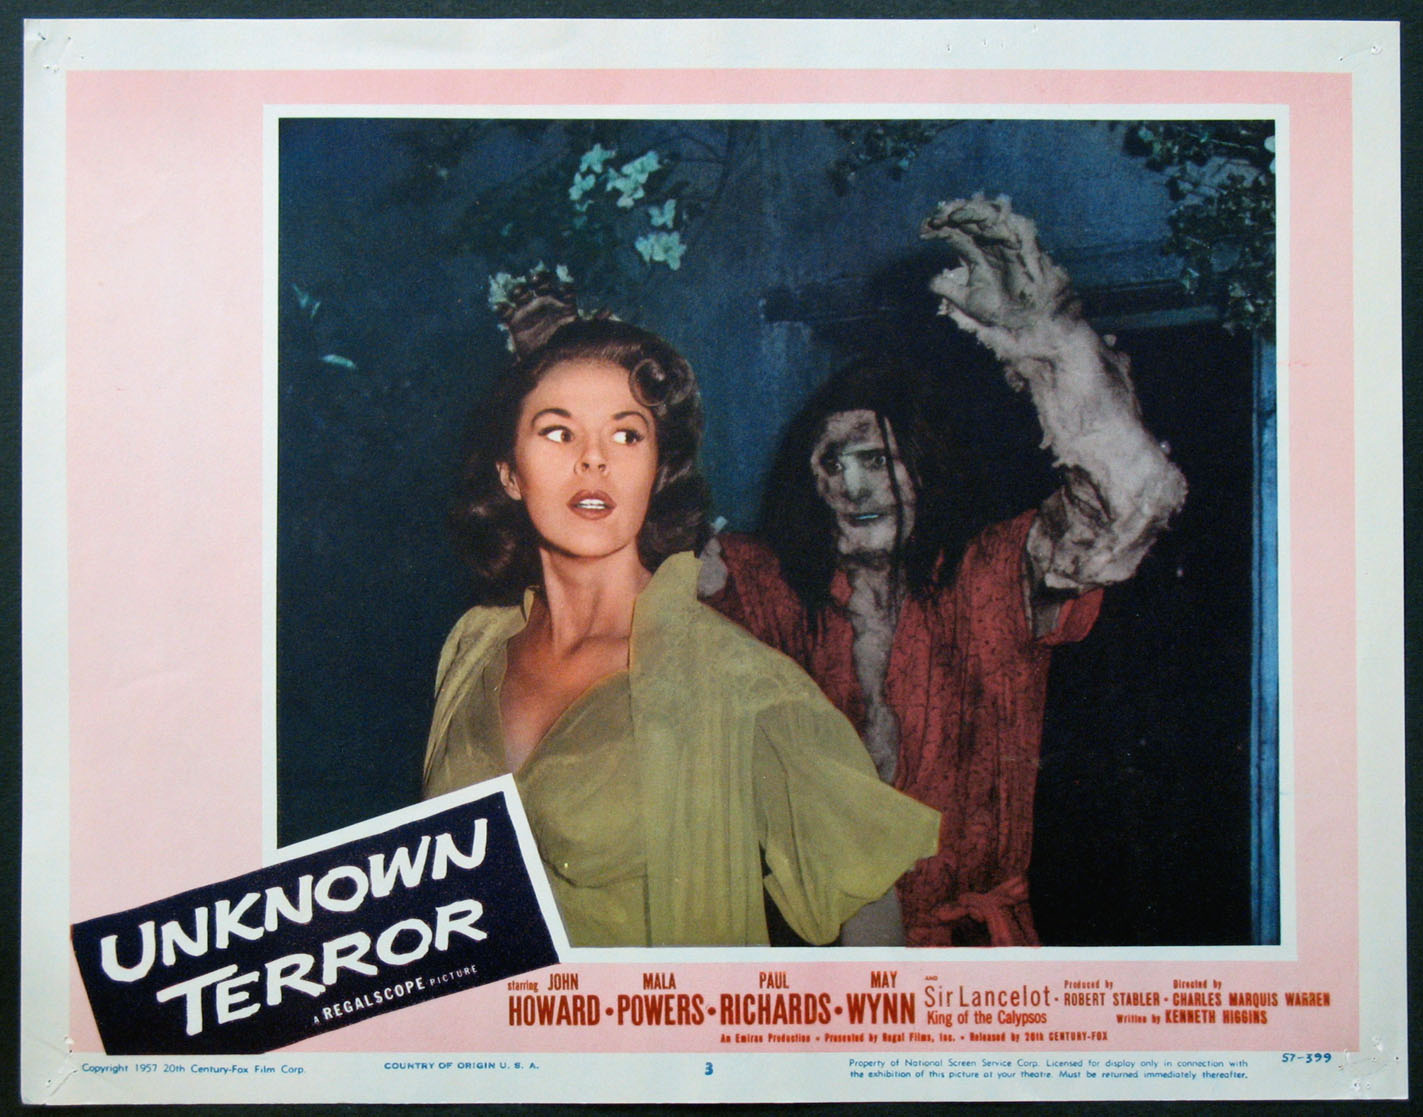 UNKNOWN TERROR @ FilmPosters.com